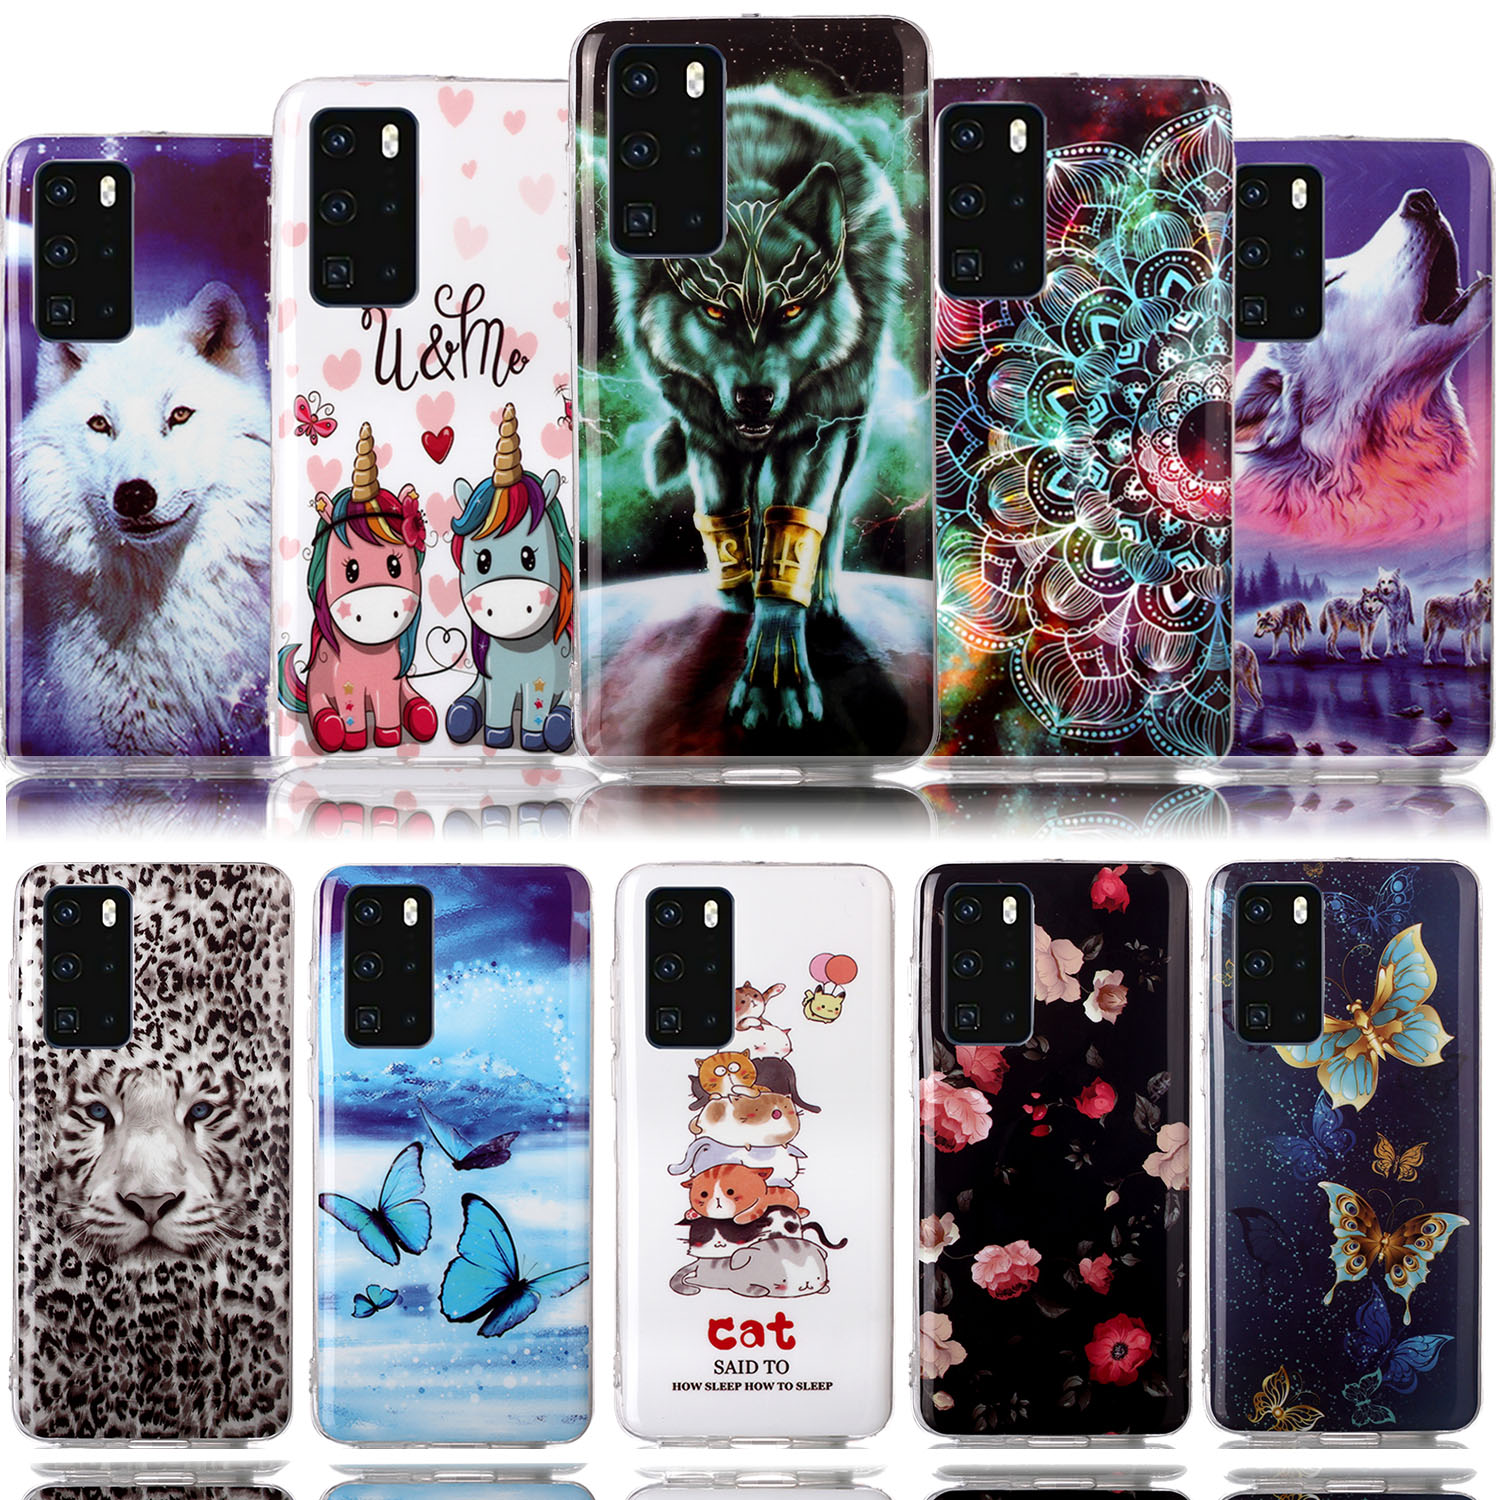 Rose <font><b>Smartphone</b></font> Cases For <font><b>Huawei</b></font> P40 Lite Soft Cover <font><b>Huawei</b></font> P30 Pro Lite P40 Nova 4E P20 Honor 8S 3E 8A Y6 <font><b>2019</b></font> Y5 Y7 <font><b>P</b></font> <font><b>Smart</b></font> 10 image